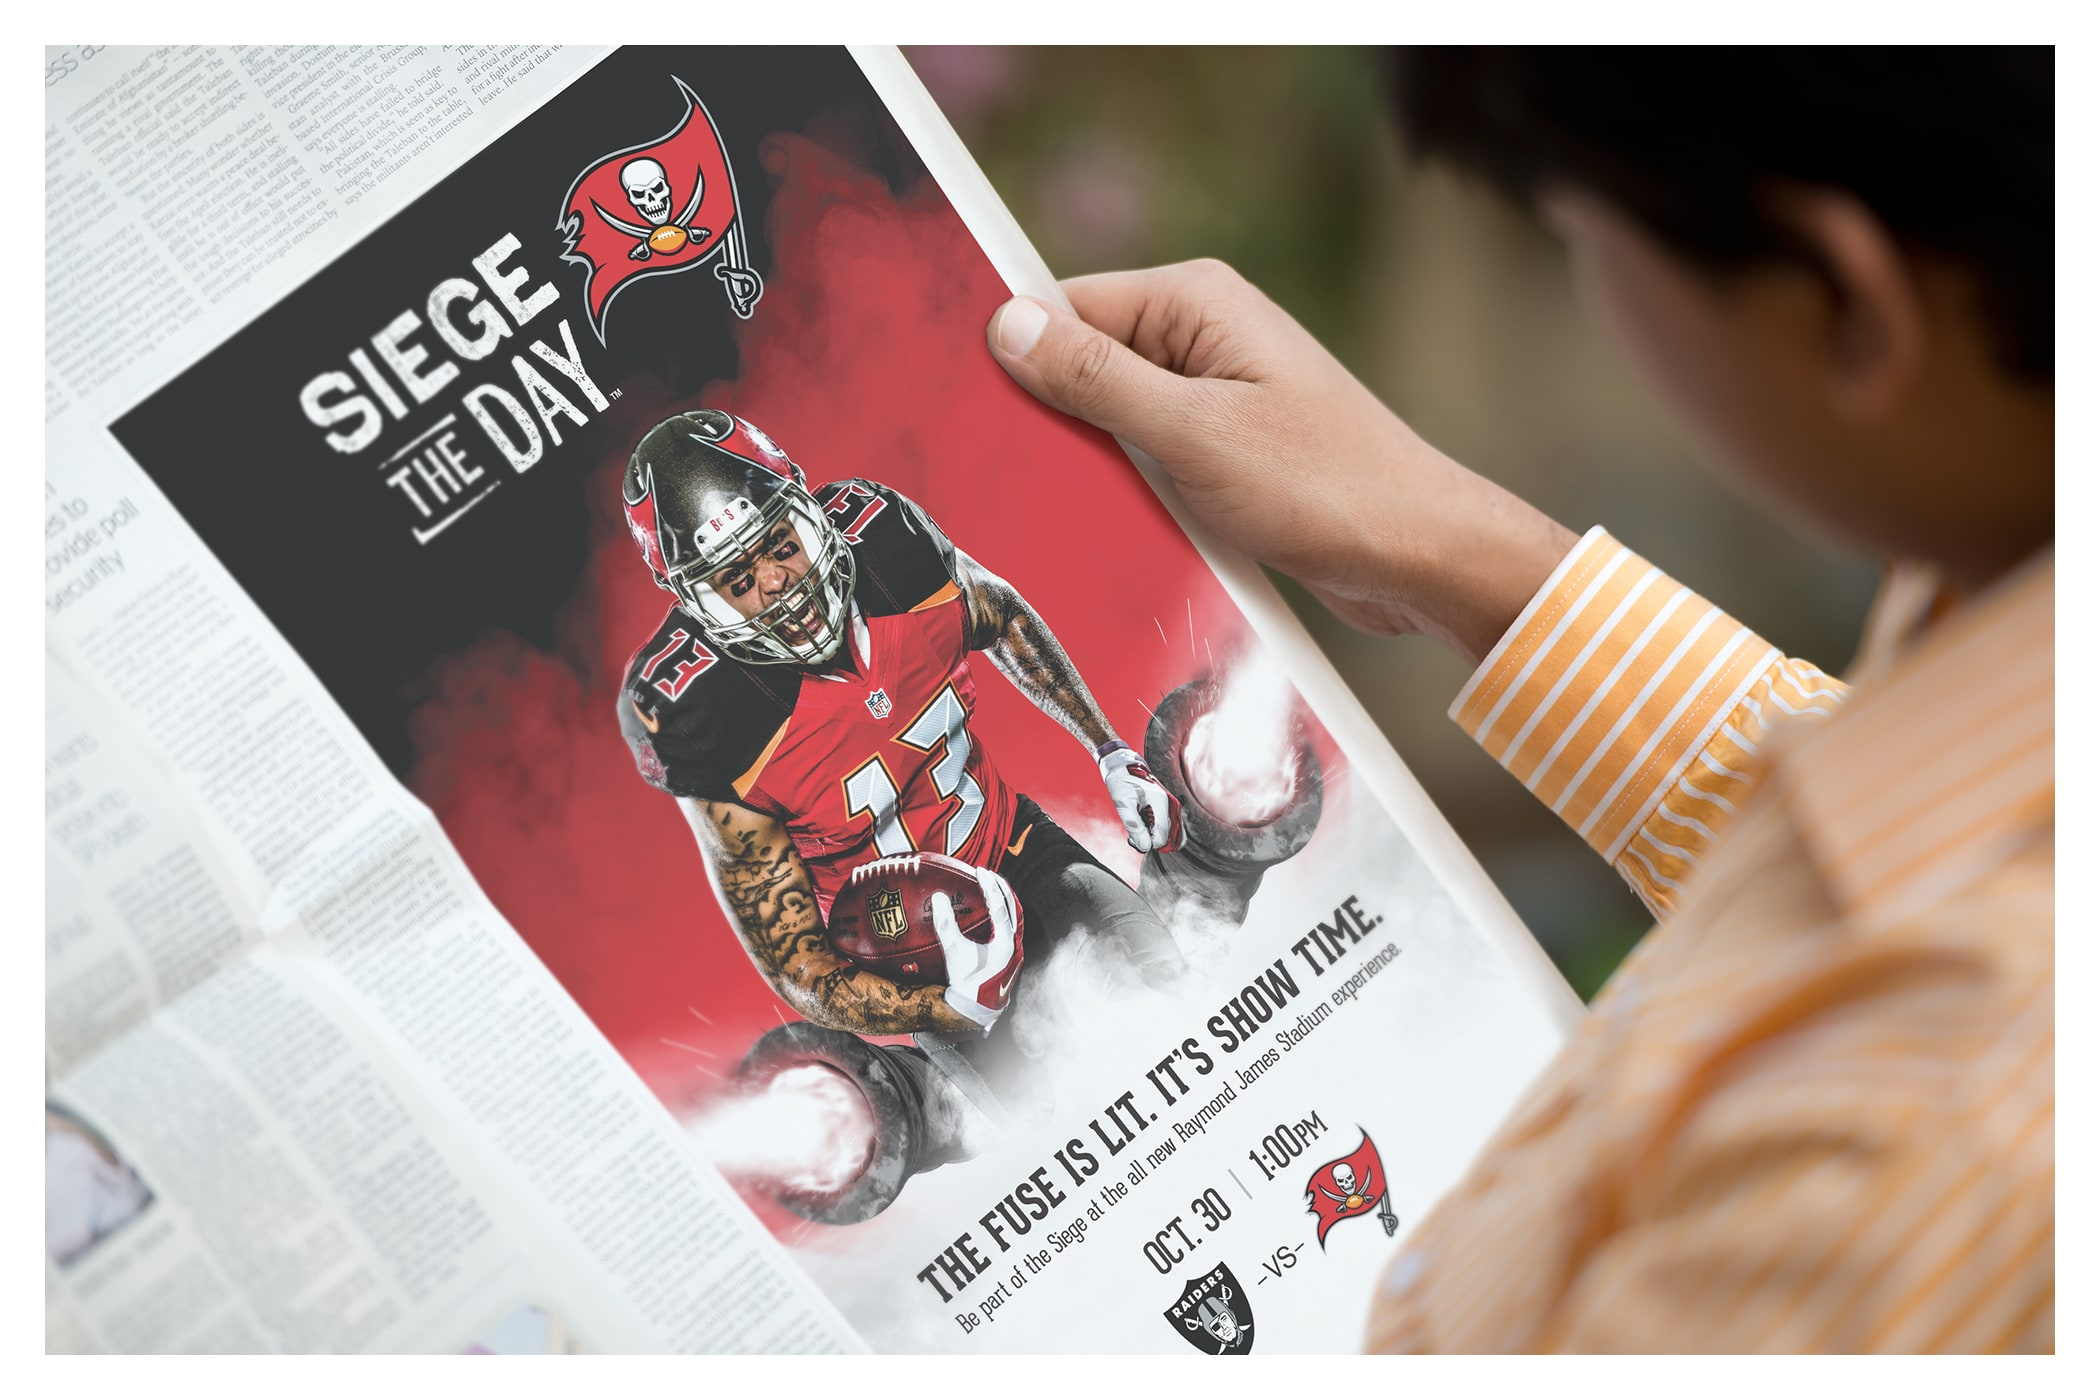 Photo of Siege the Day ad in newspaper